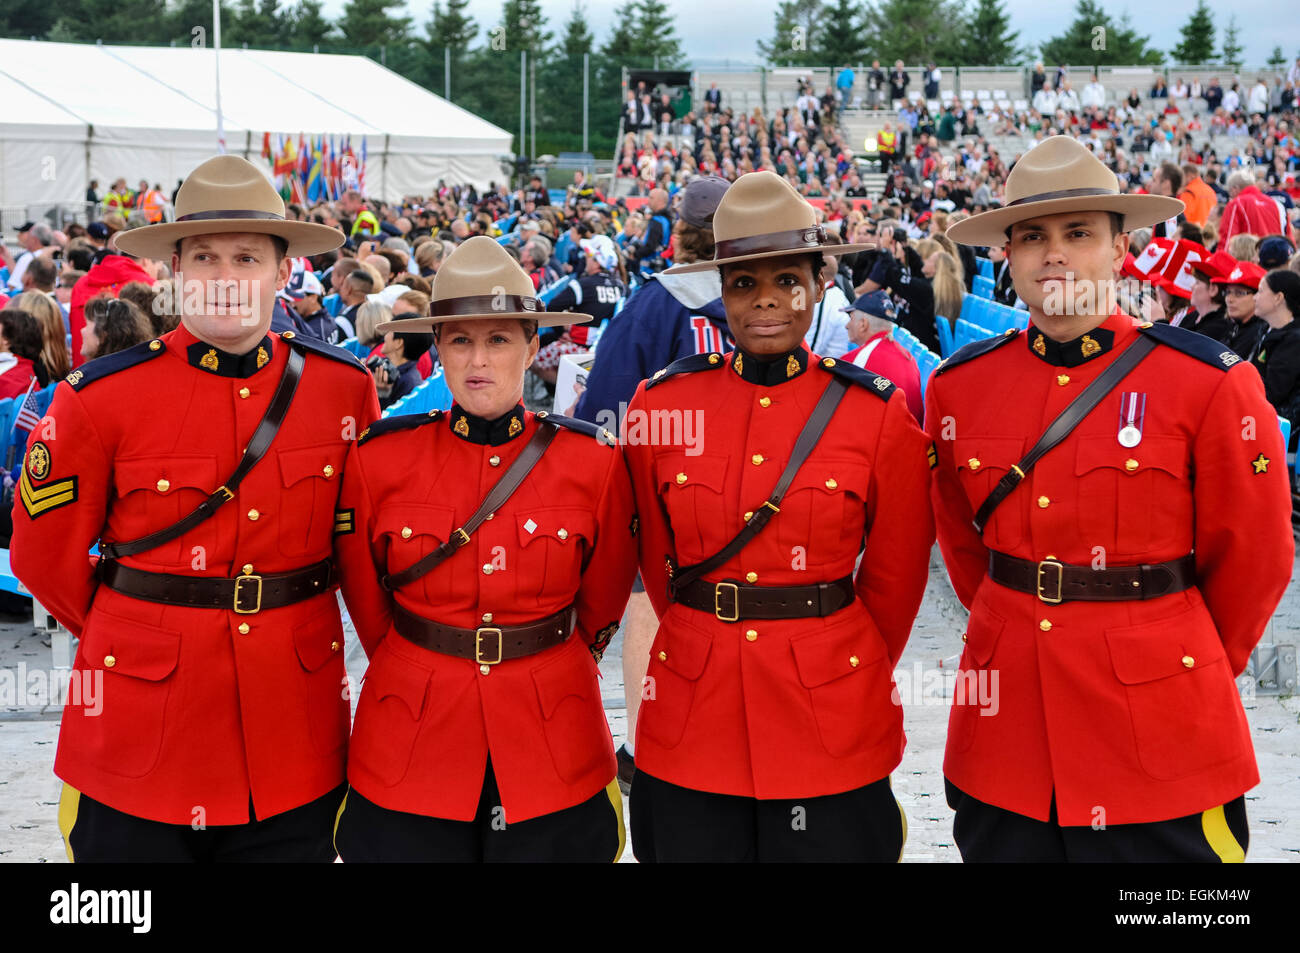 Officers From The Royal Canadian Mounted Police Stock